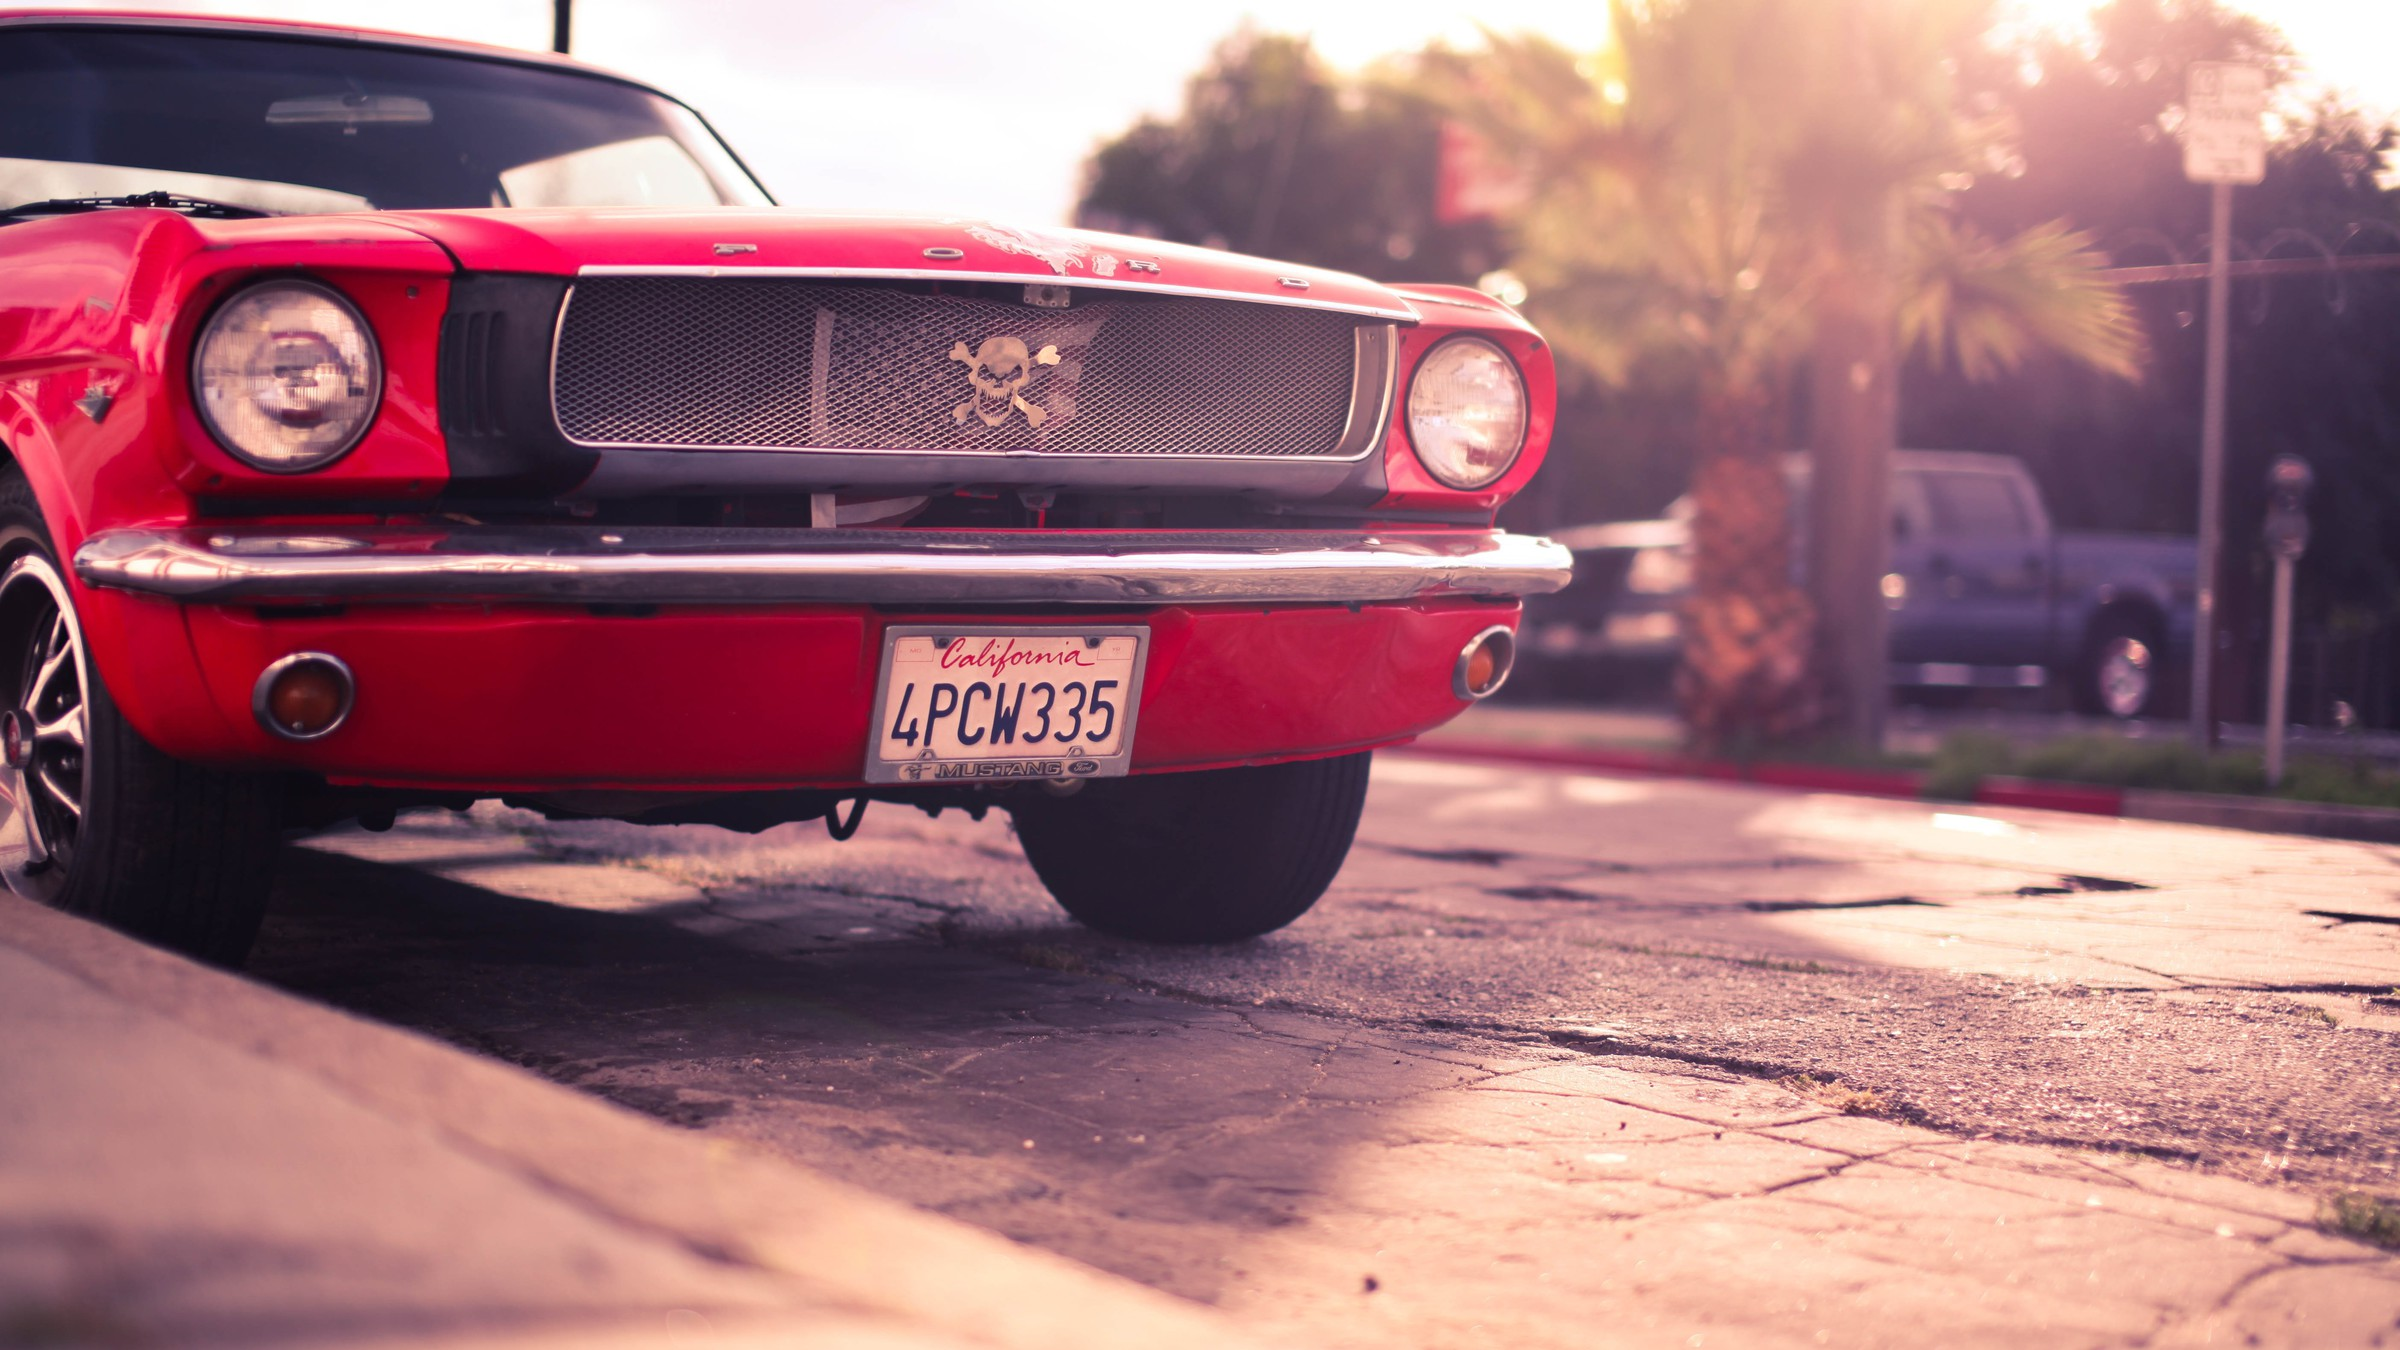 Ford mustang cars classic muscle vehicles wallpaper ...